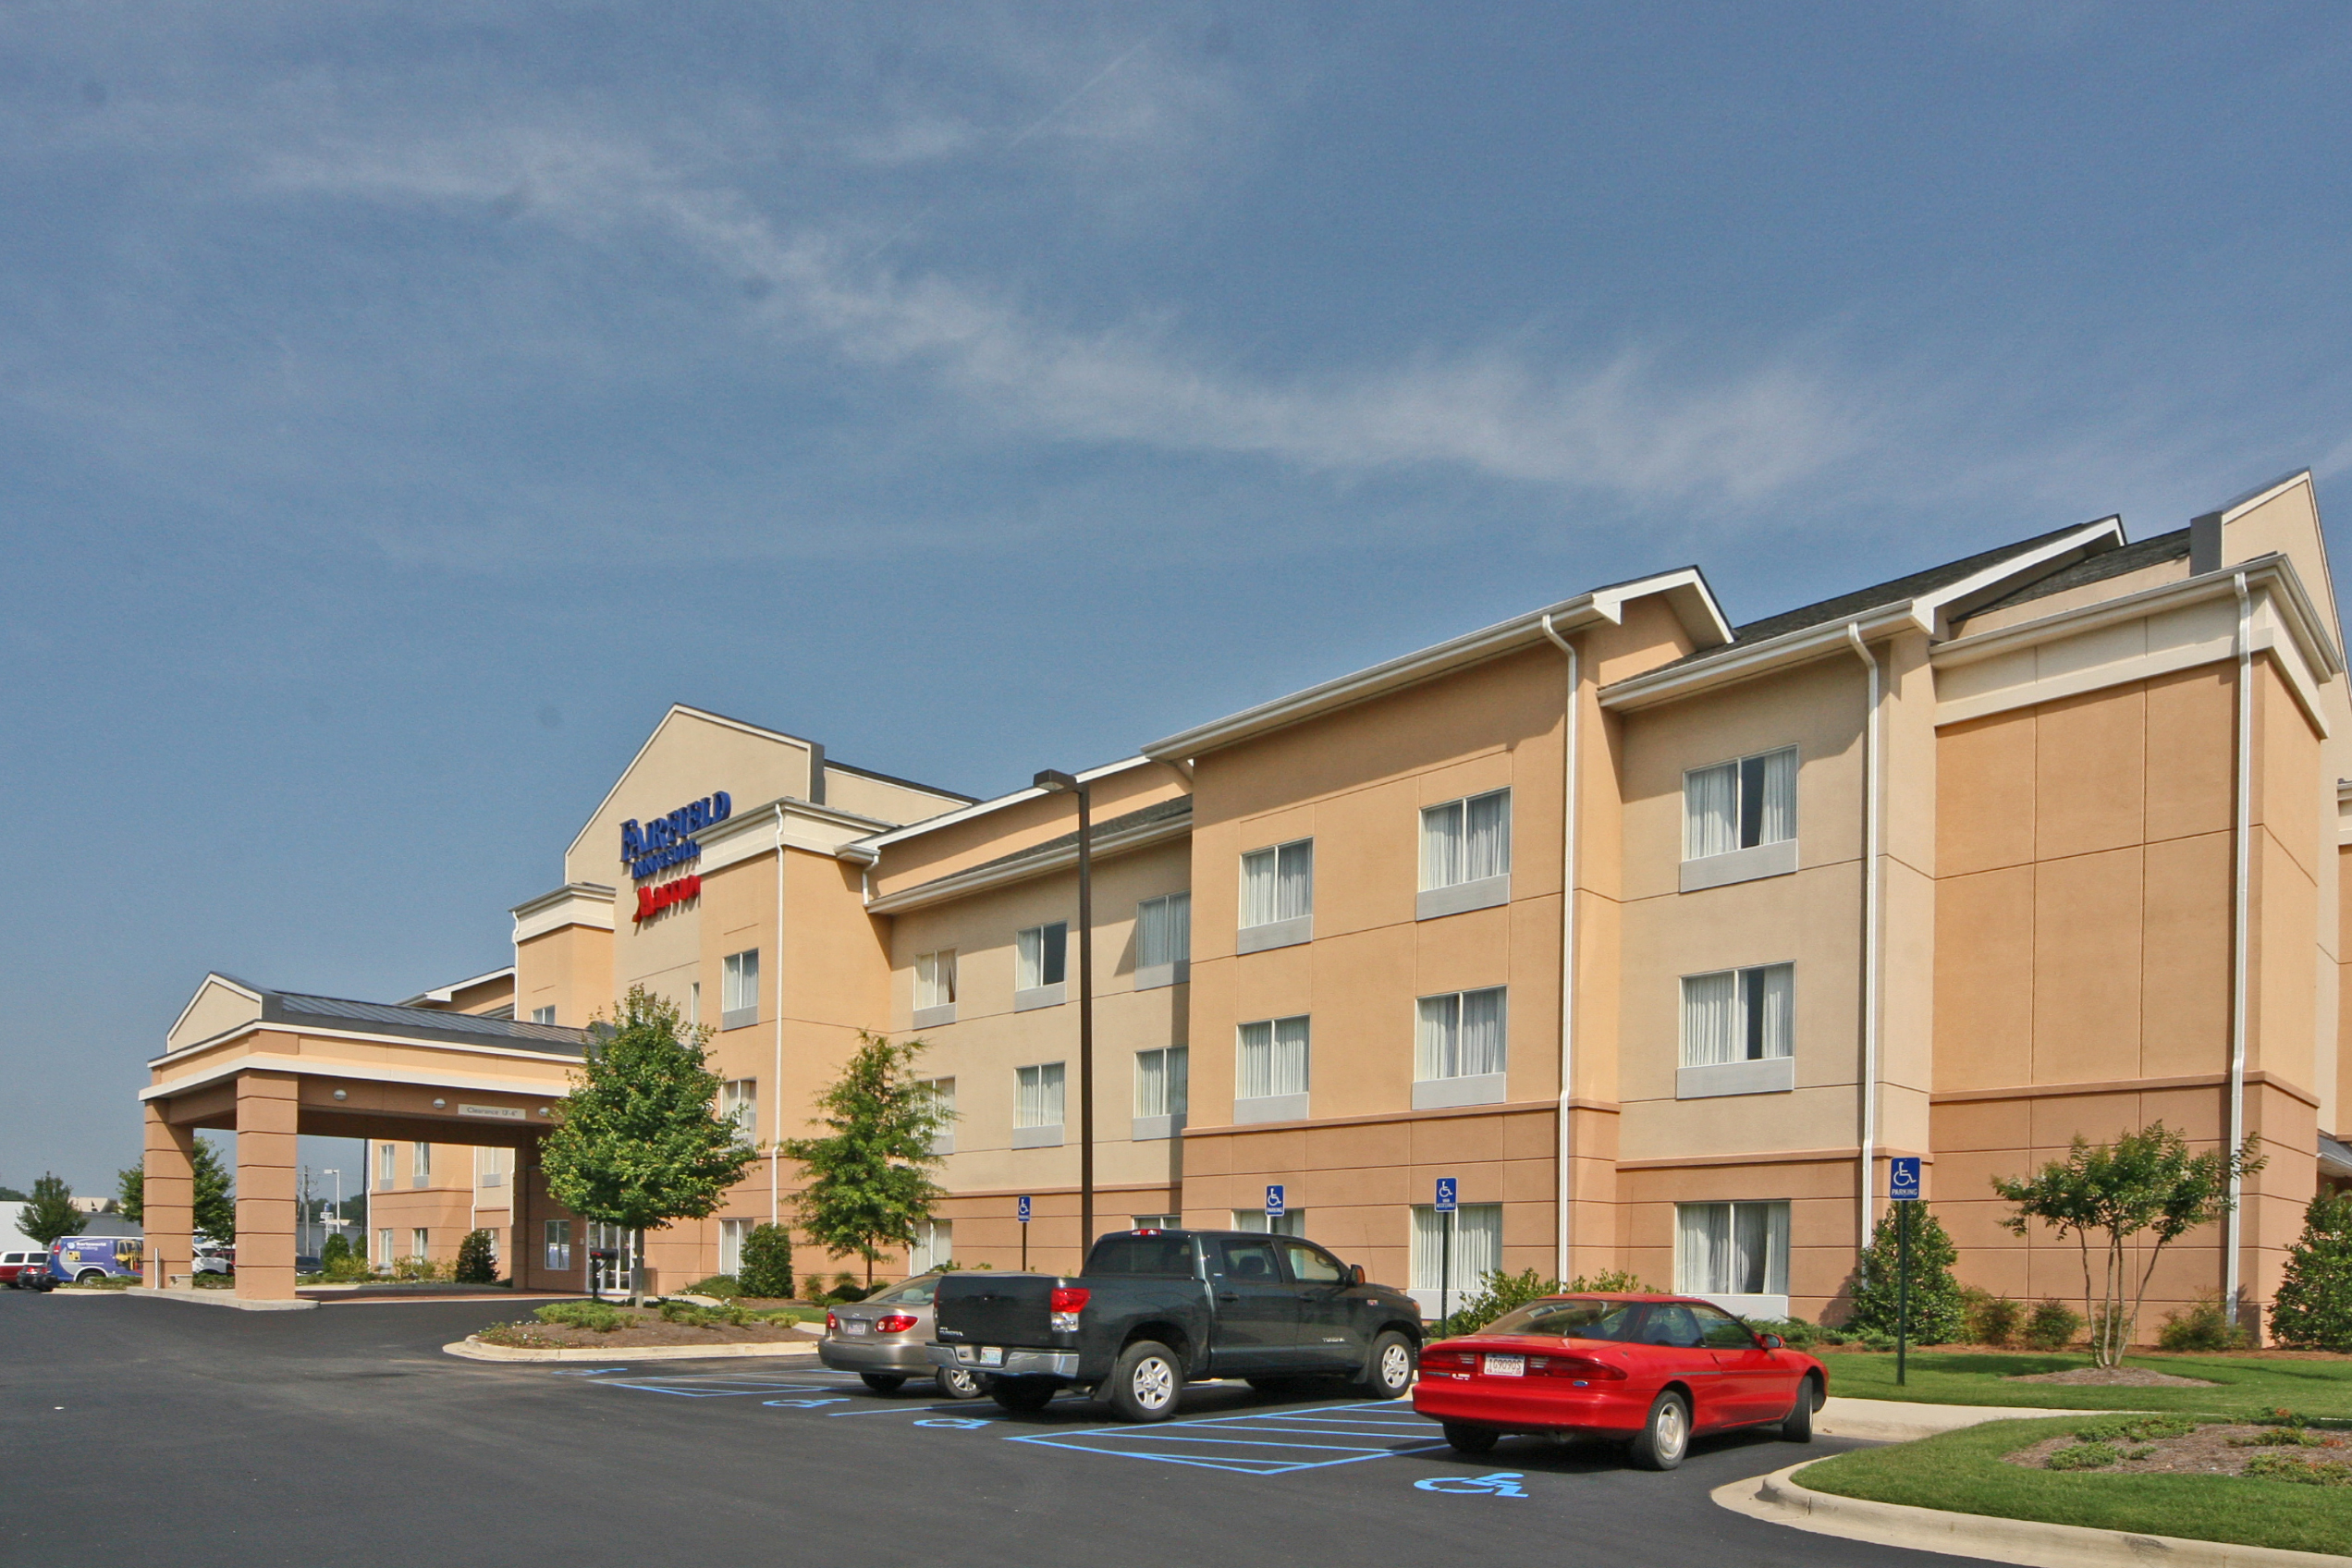 Fairfield Inn & Suites I-65